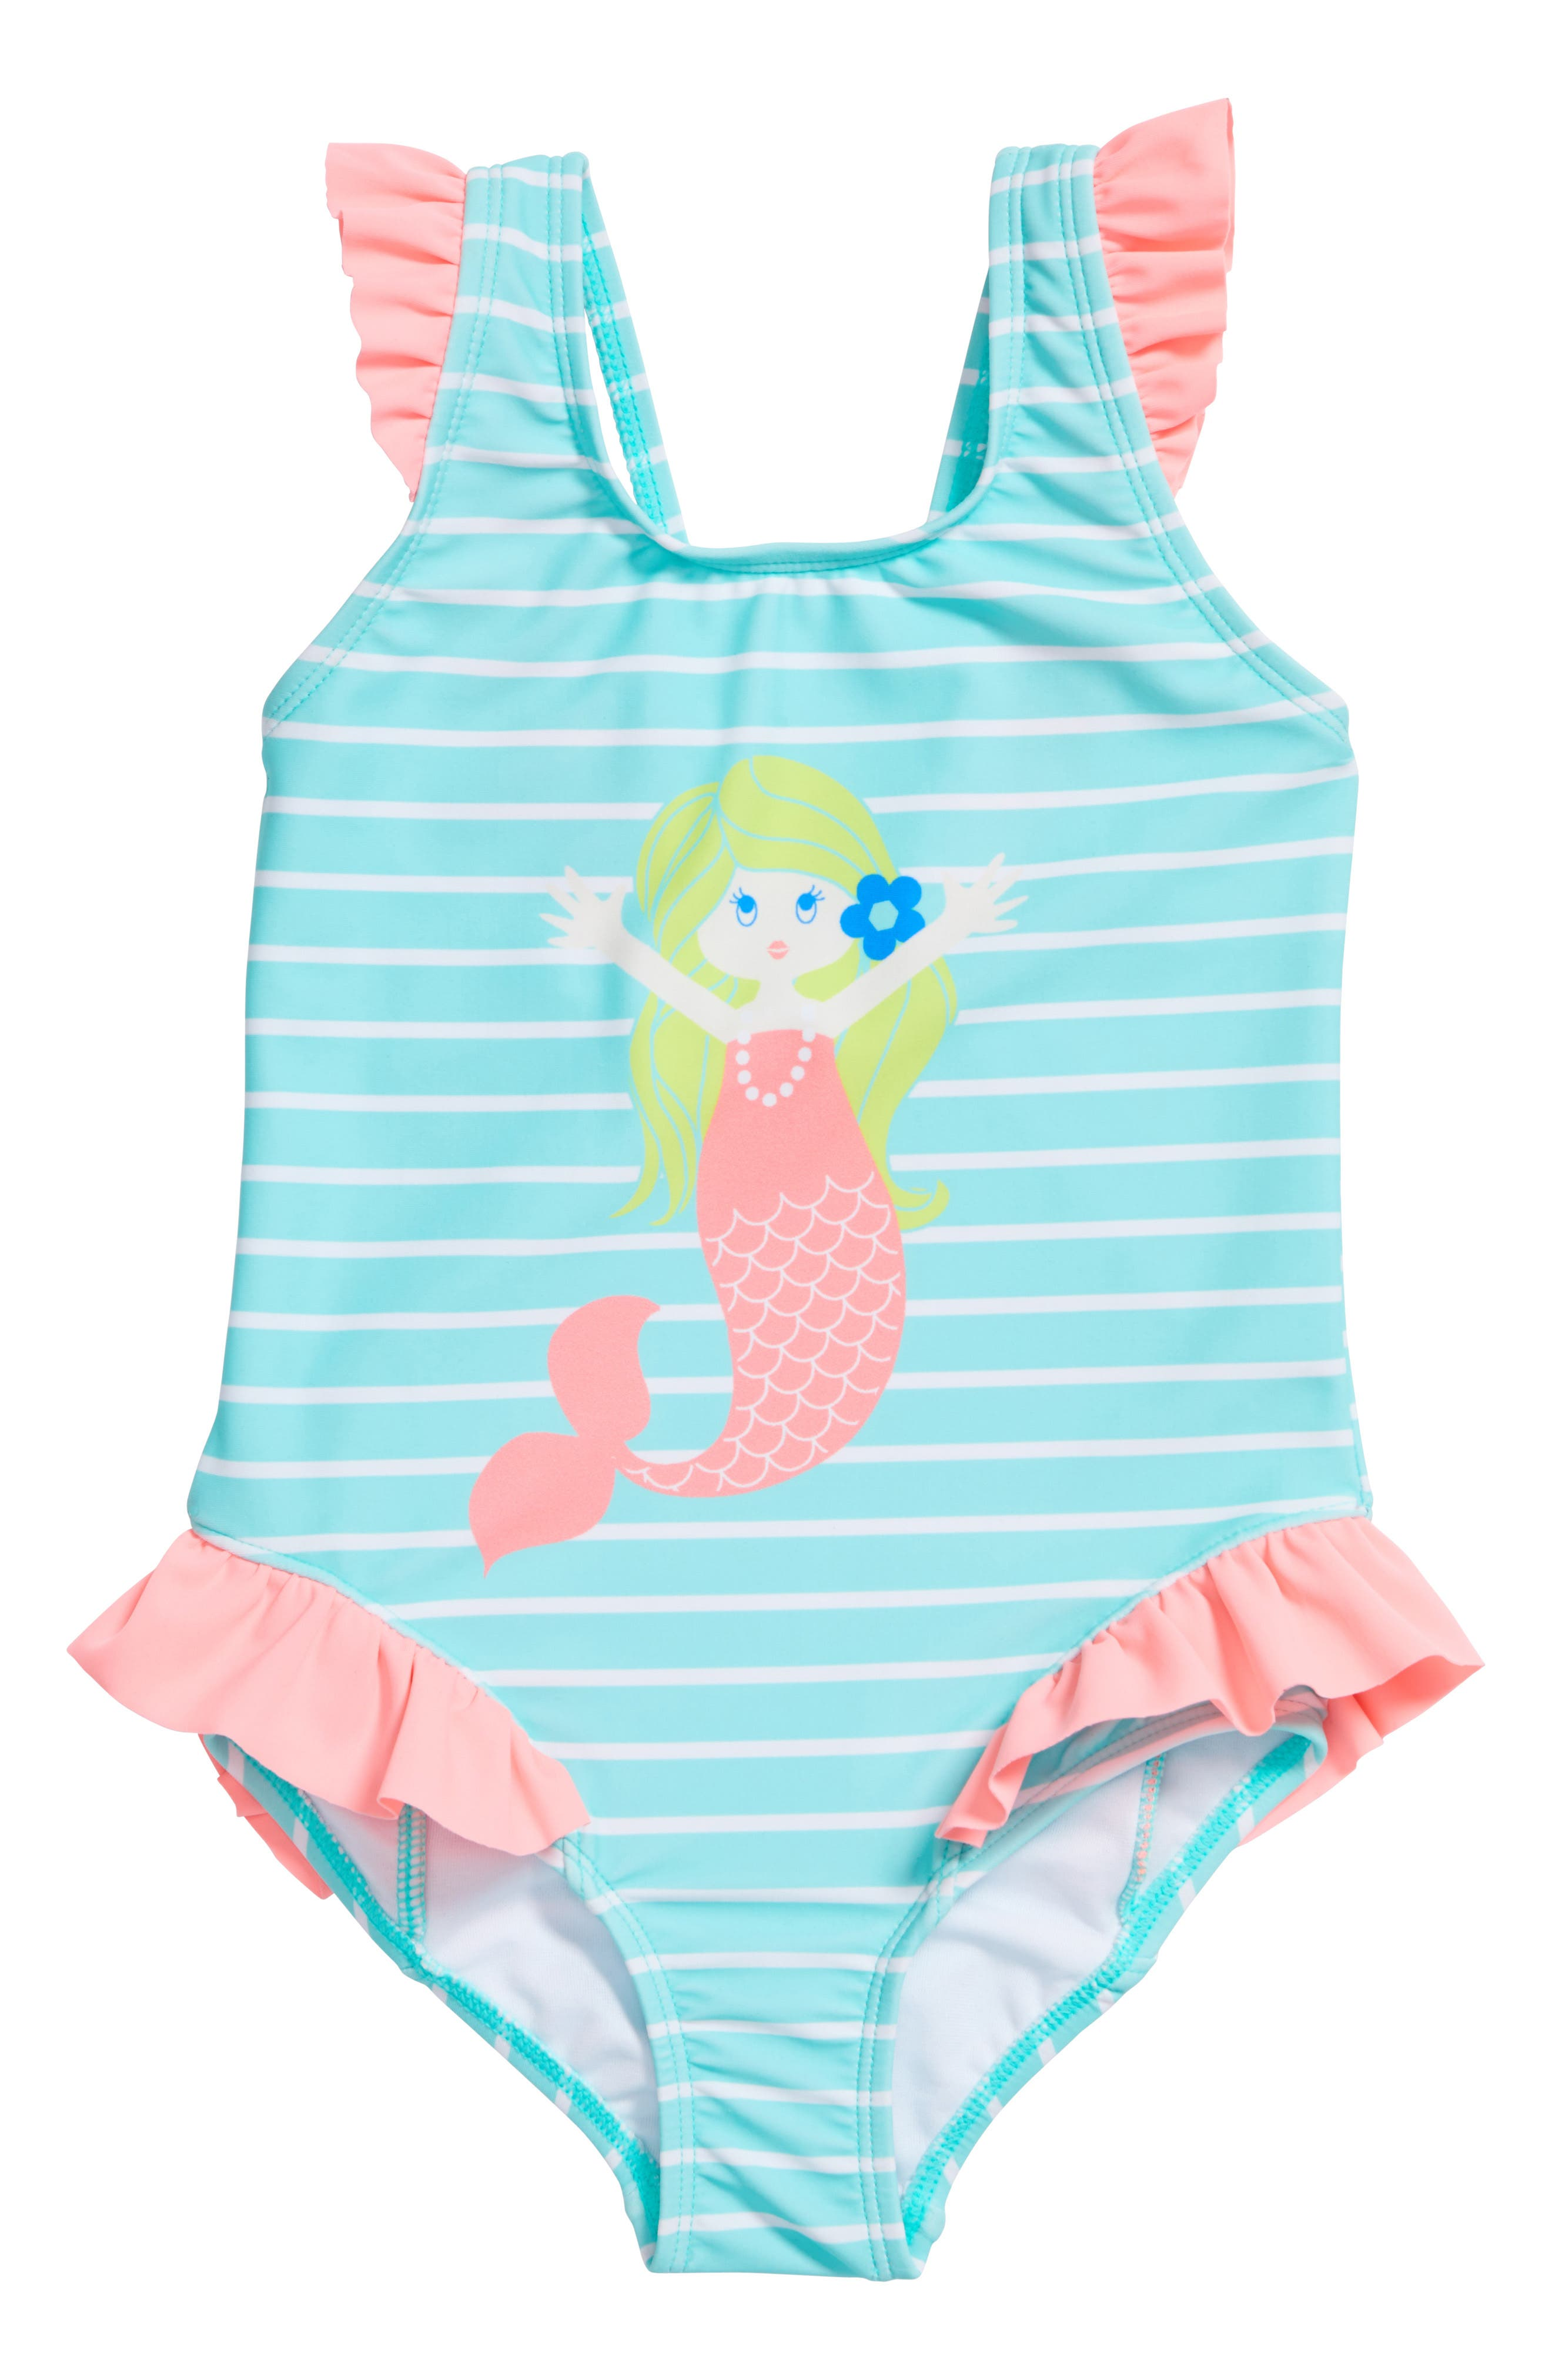 Alternate Image 1 Selected - Hula Star All Is Love One-Piece Swimsuit (Toddler Girls & Little Girls)